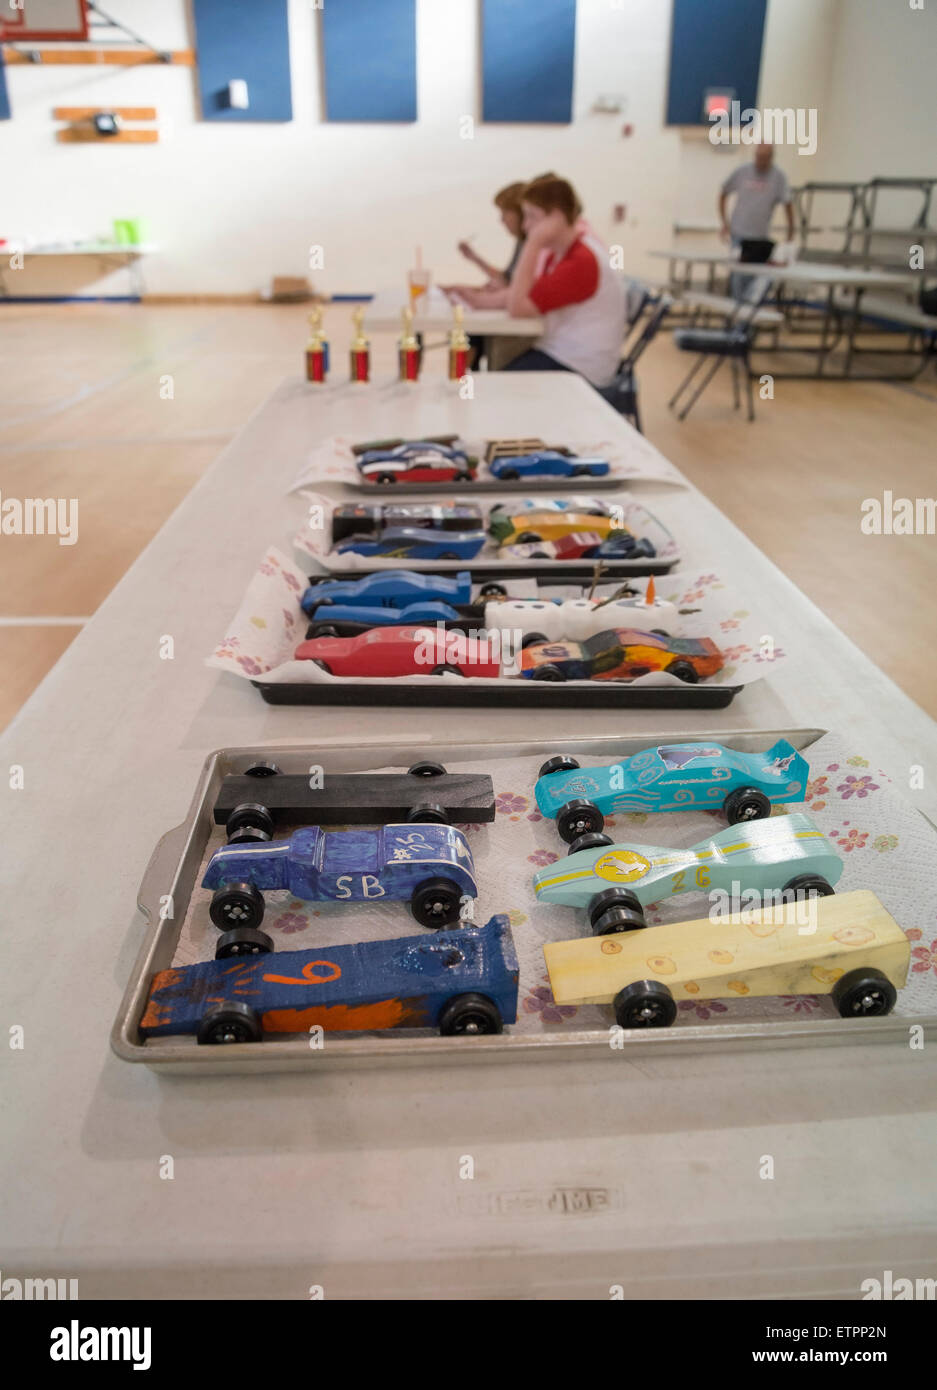 Model car races for kids at First Baptist Church of High Springs Florida. - Stock Image